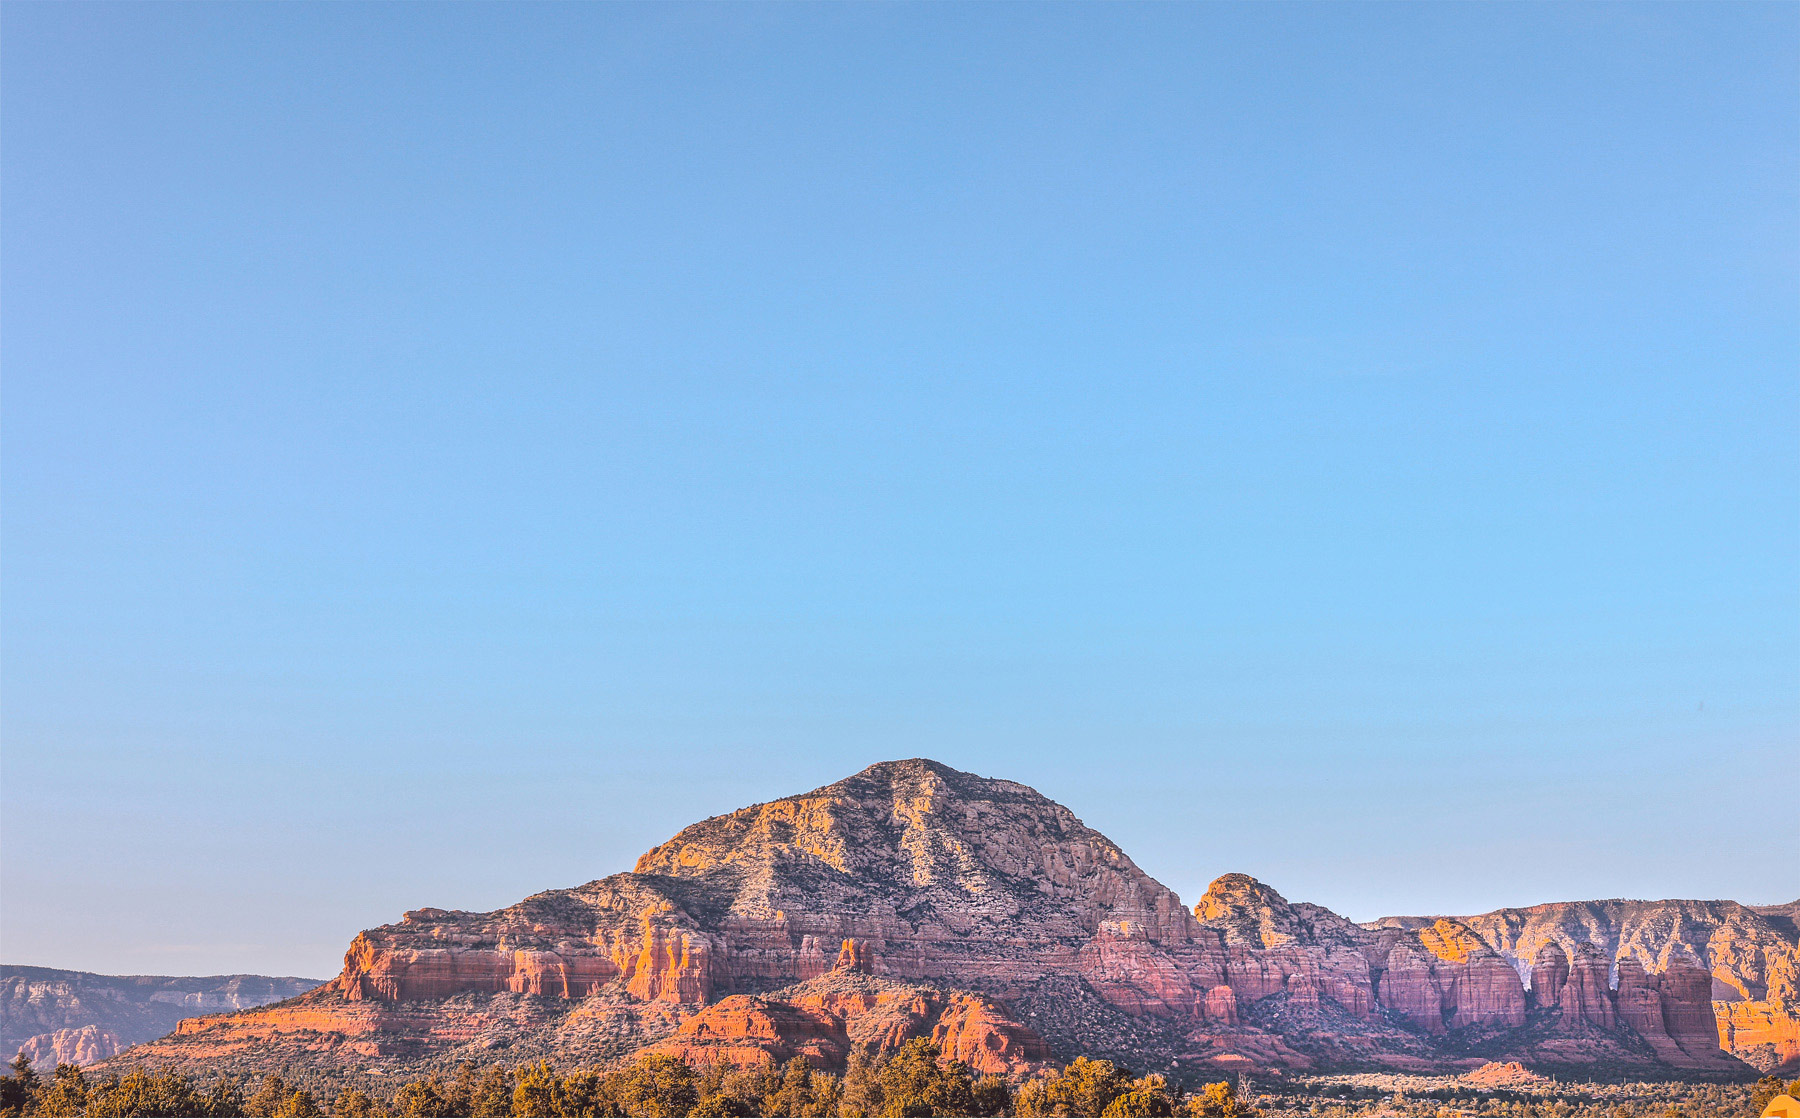 04-Sedona-Arizona-Wedding-Photographer-by-Andrew-Vick-Photography-Spring-Landscape-Mountains-Barbara-and-Mike.jpg